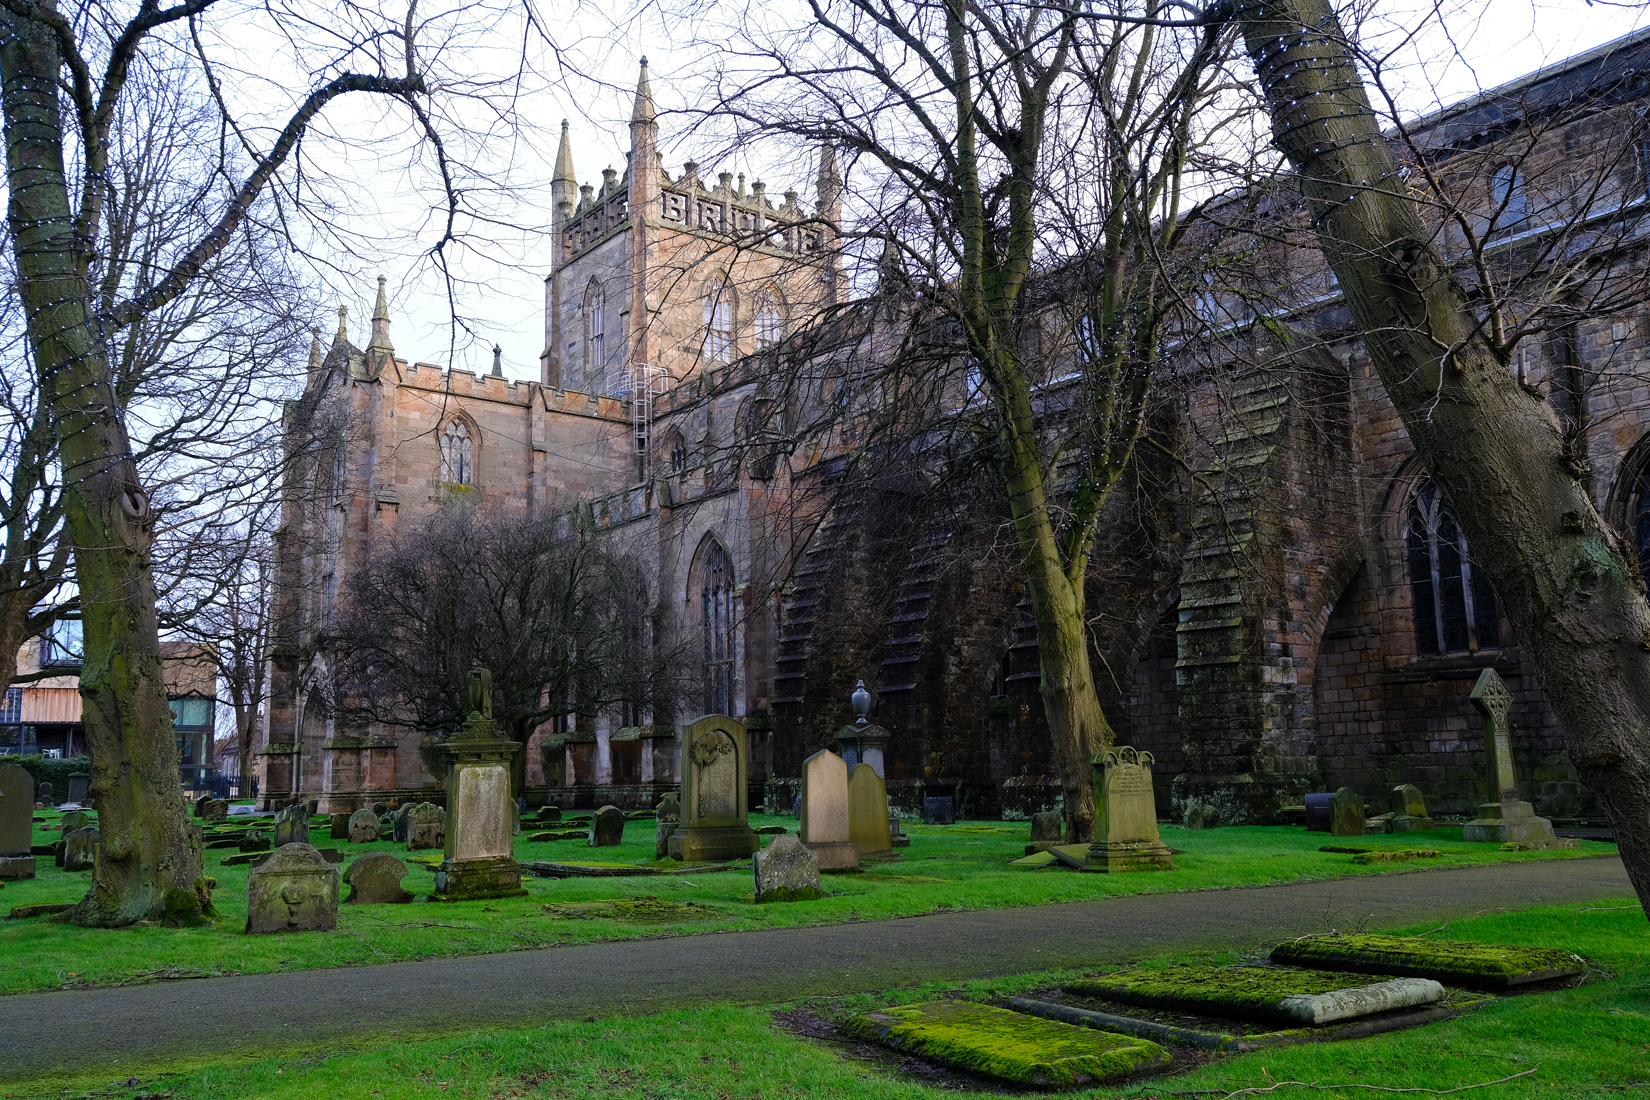 Looking to north side of old Nave and New Abbey Church. Foreground has trees and graveyard.